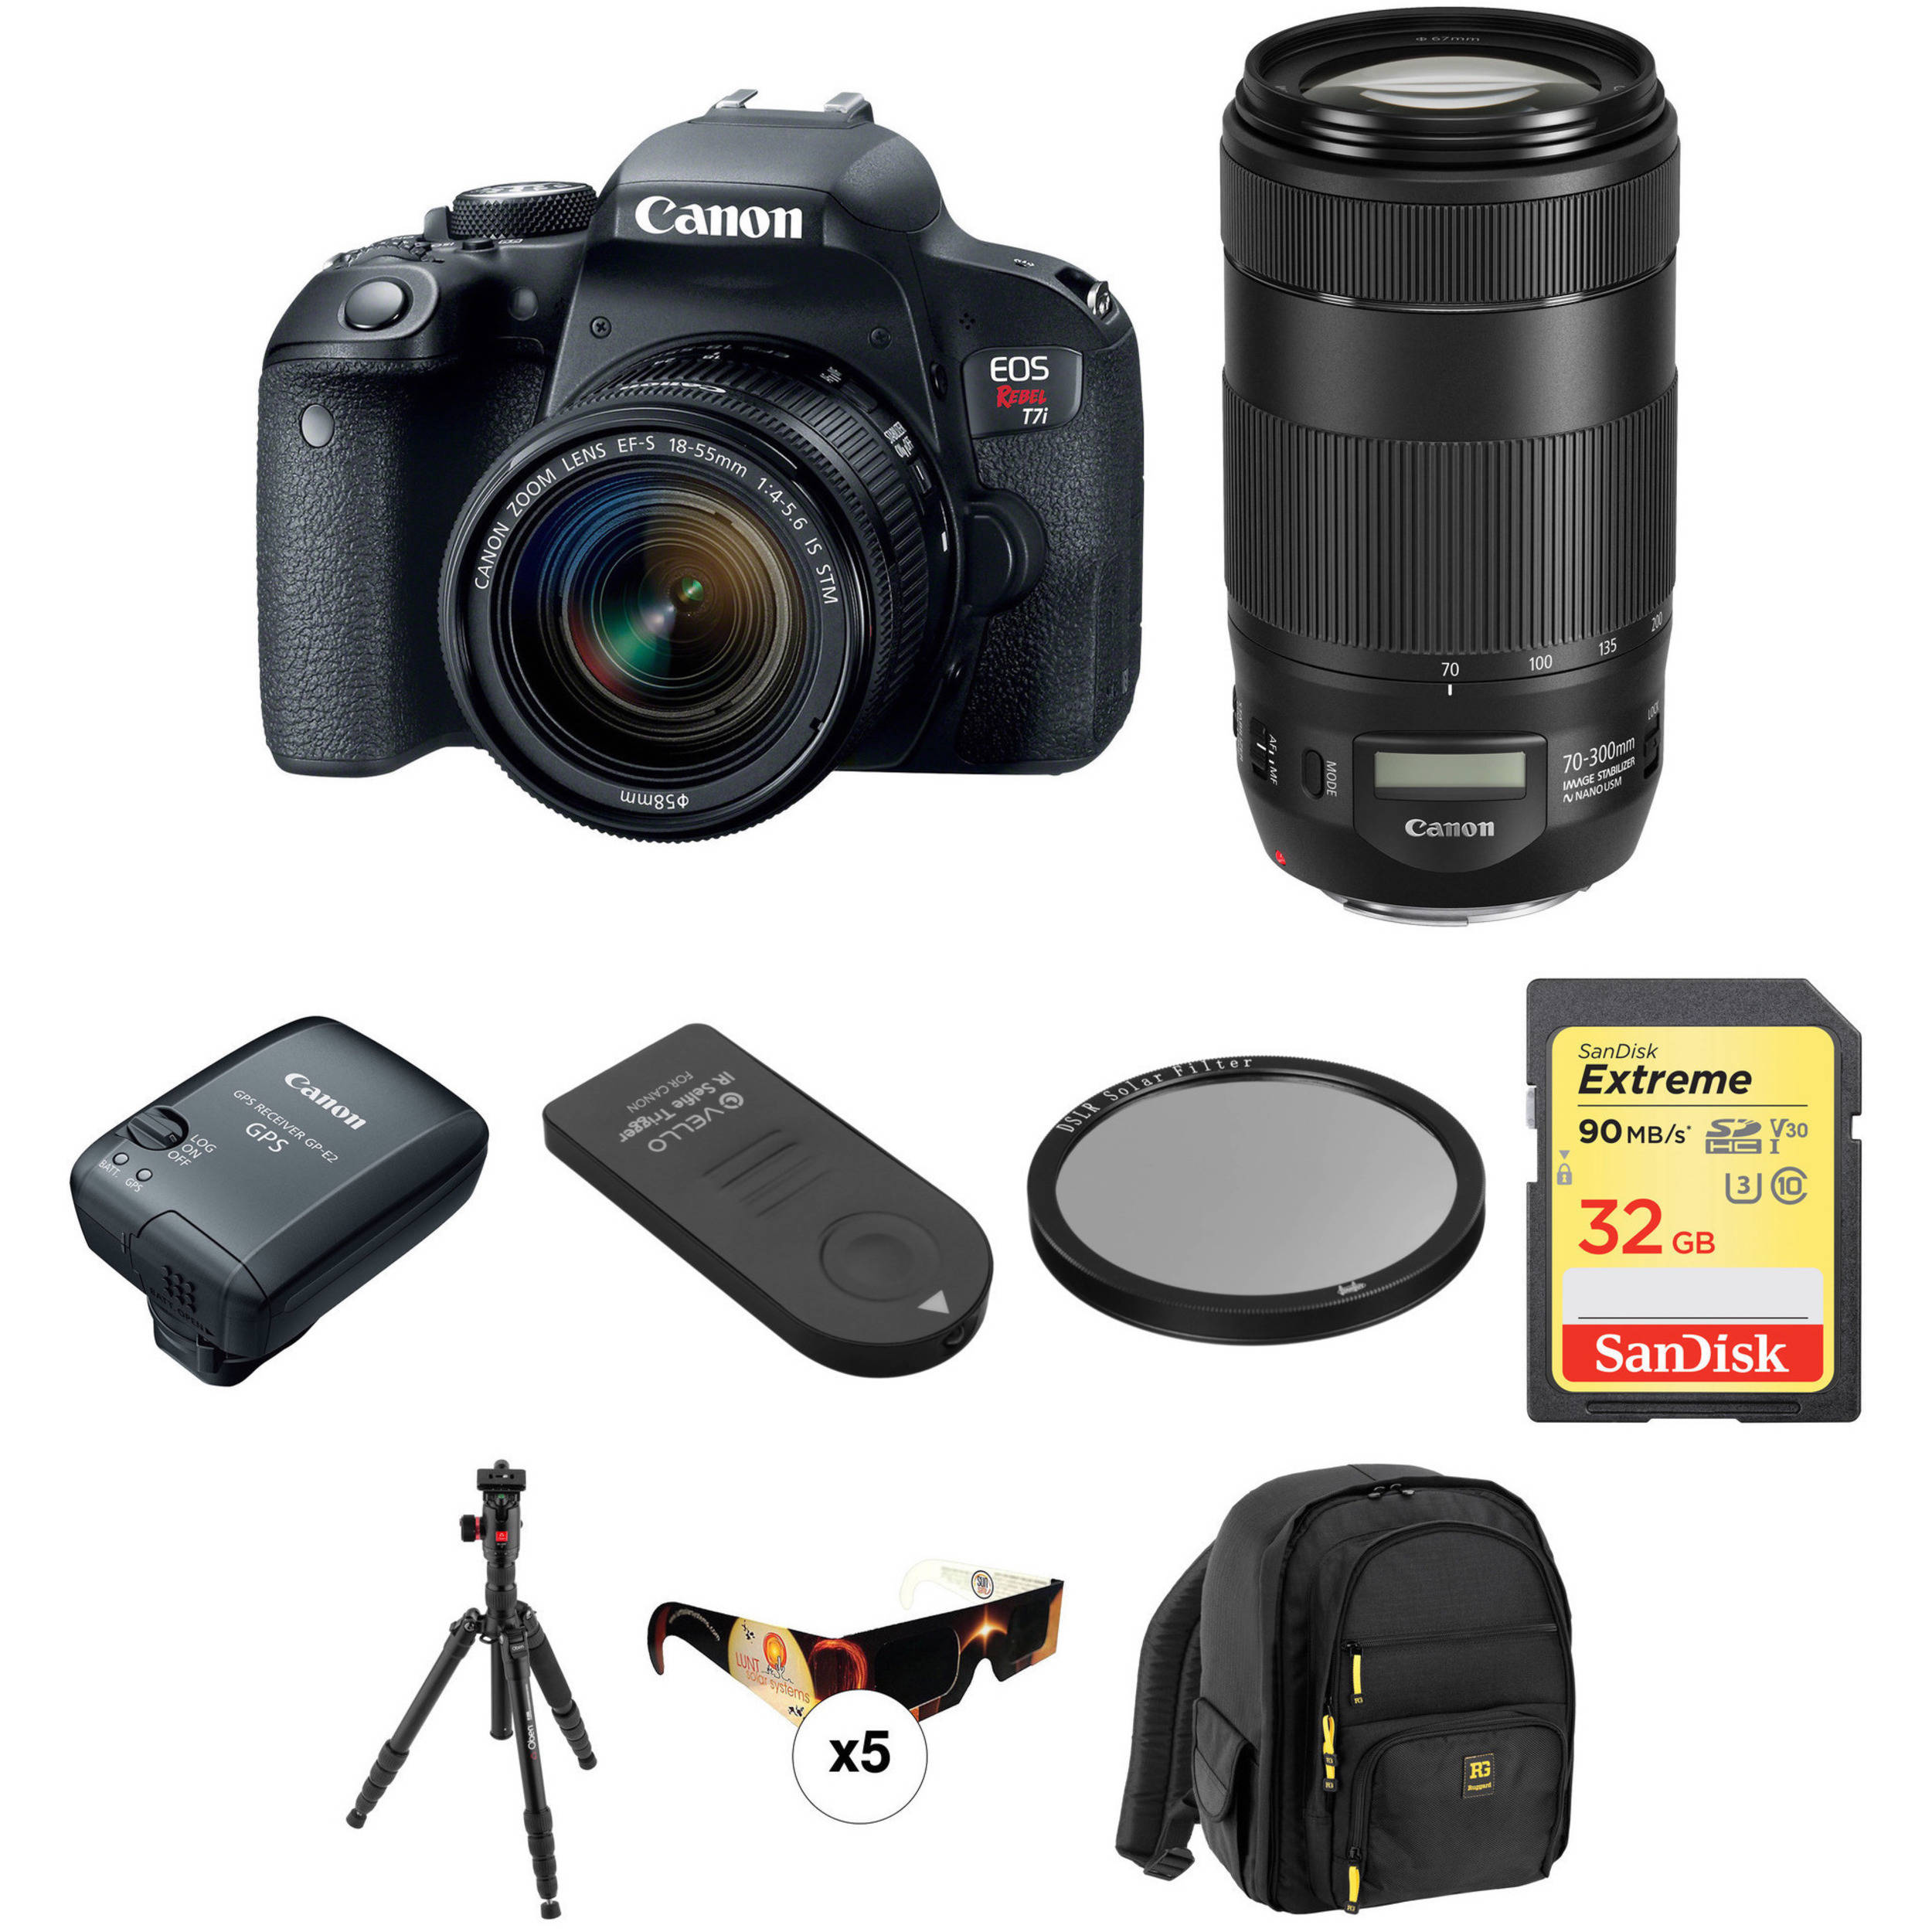 Canon Eos Rebel T7i Dslr Camera With 18 55mm And 70 300mm